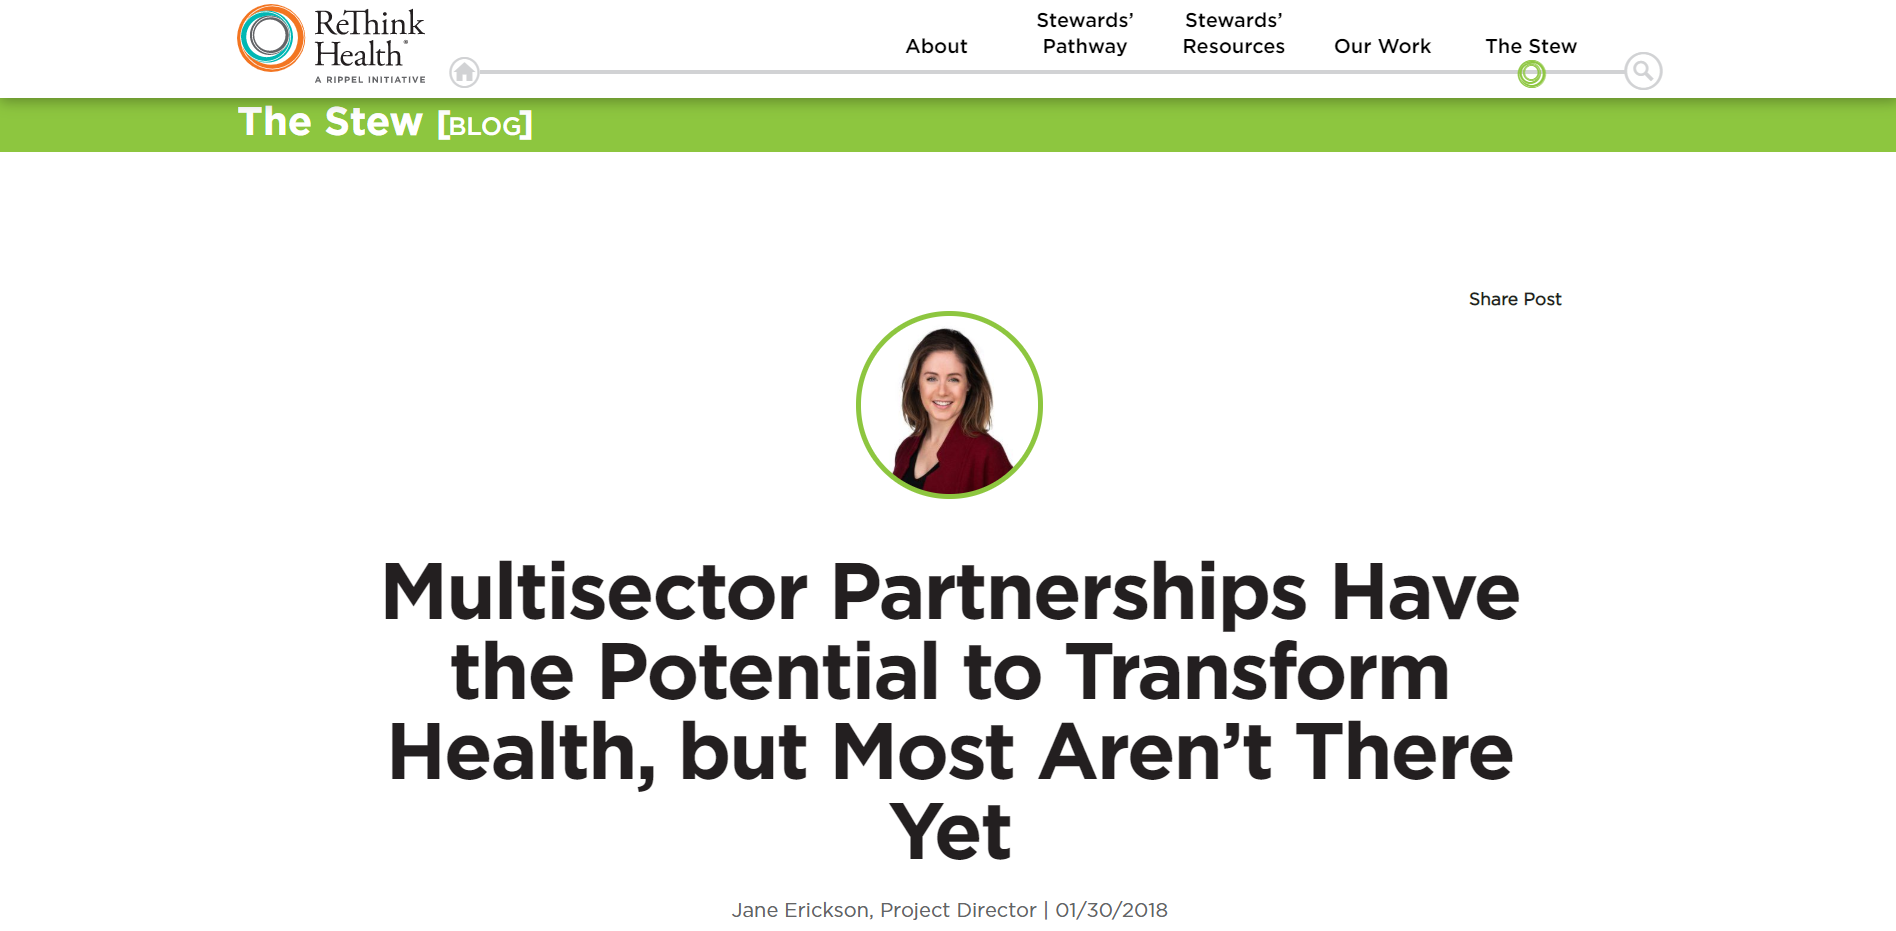 Multisector Partnerships Have the Potential to Transform Health, but Most Aren't There Yet